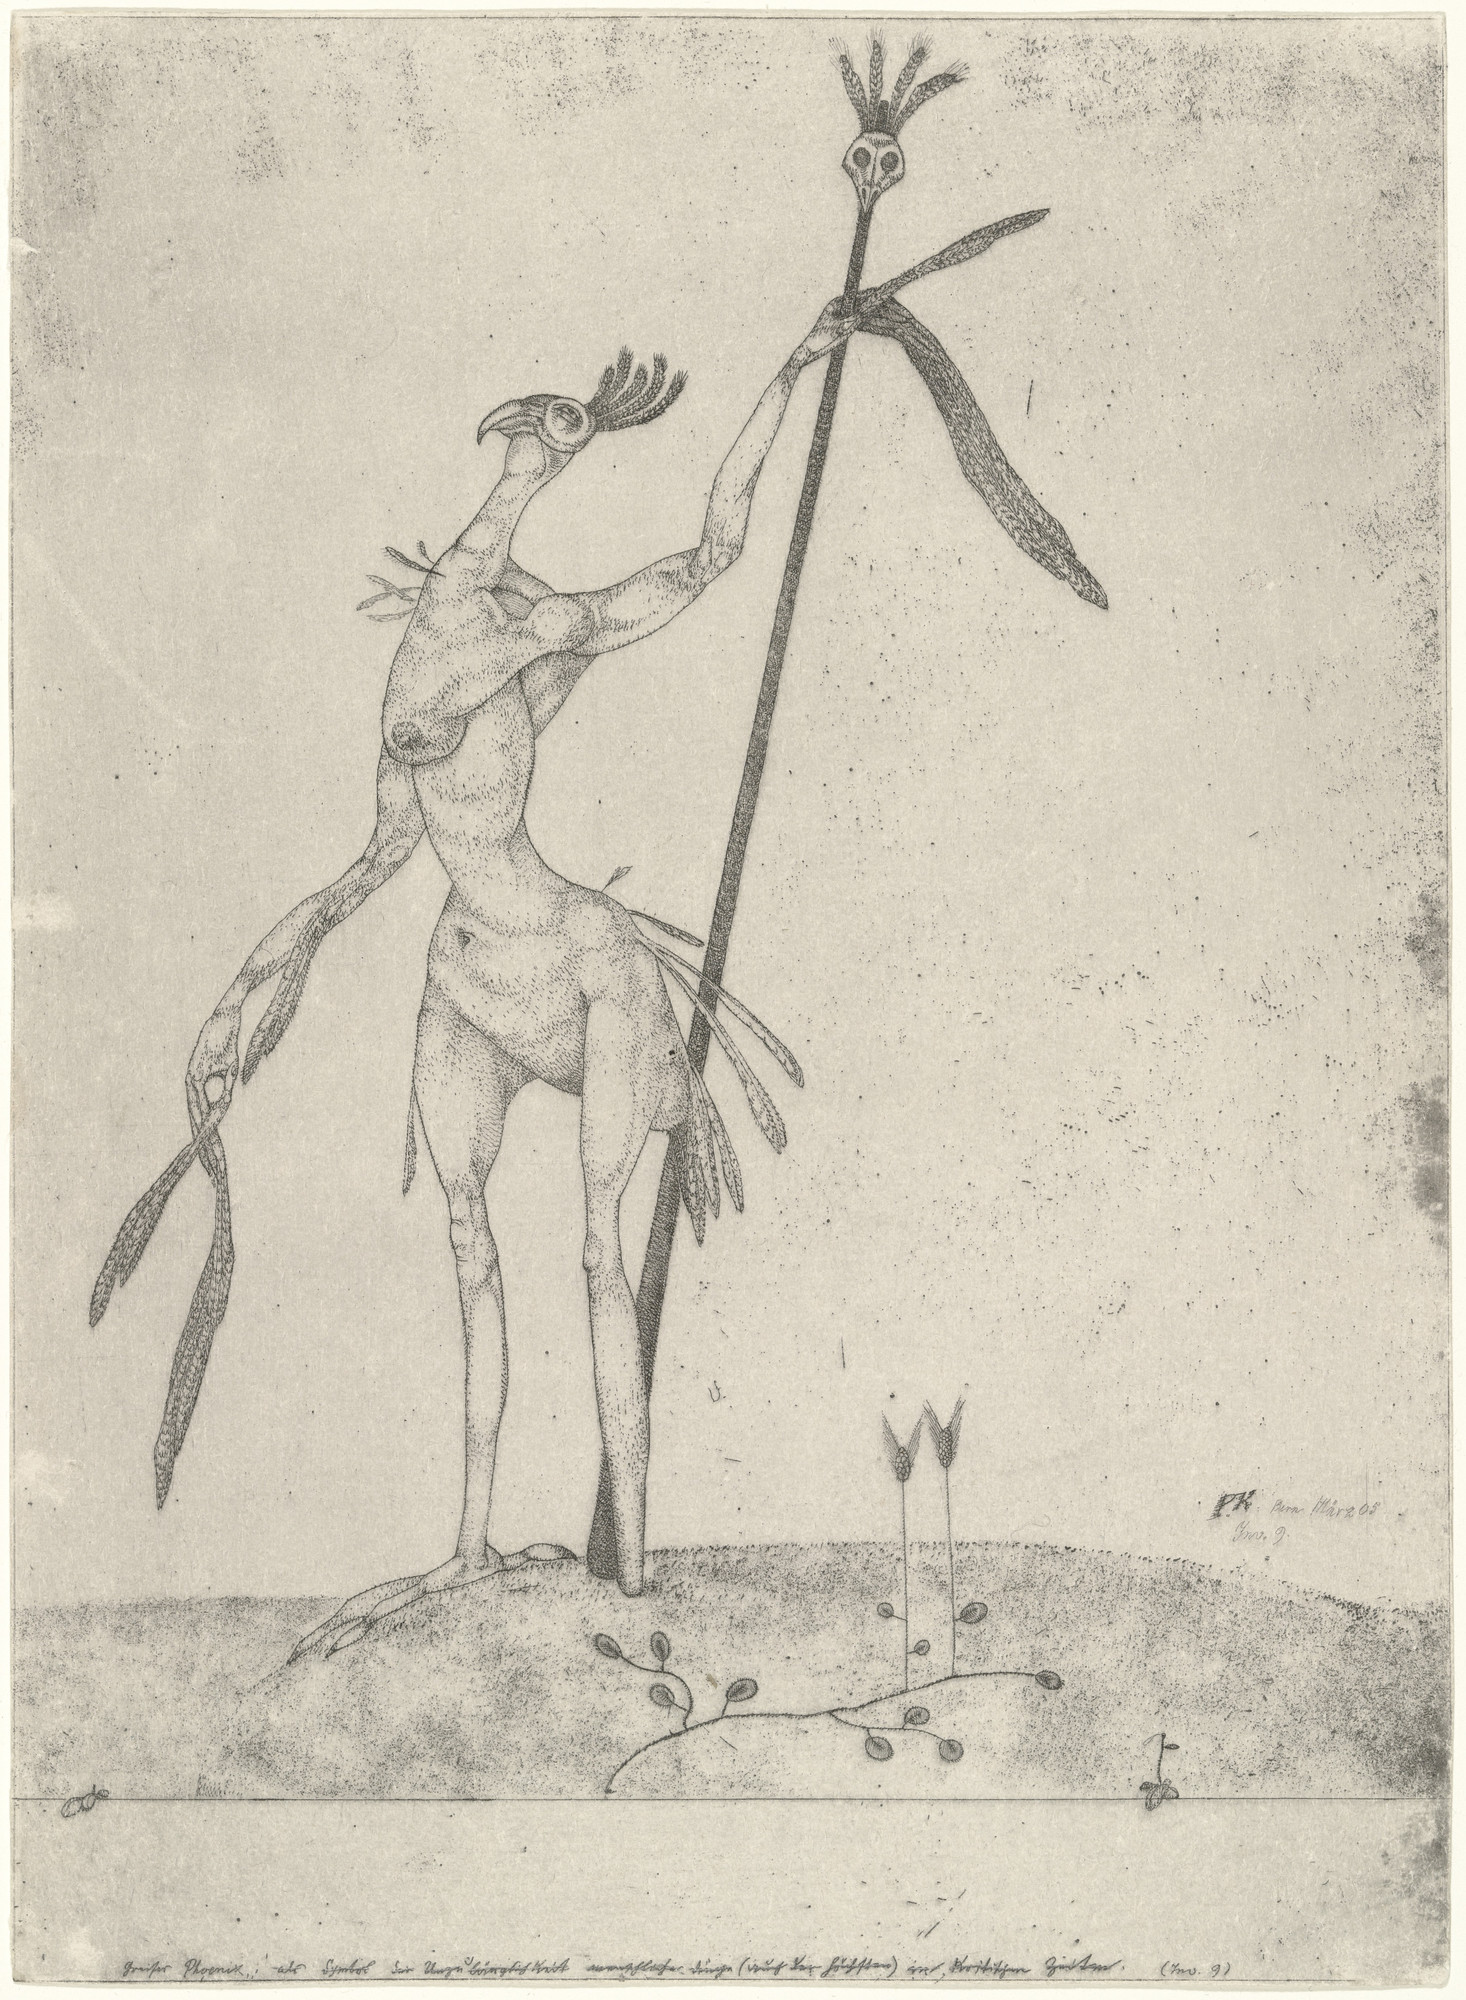 Paul Klee. Aged Phoenix (Greiser Phoenix) from the series Inventions (Inventionen). 1905